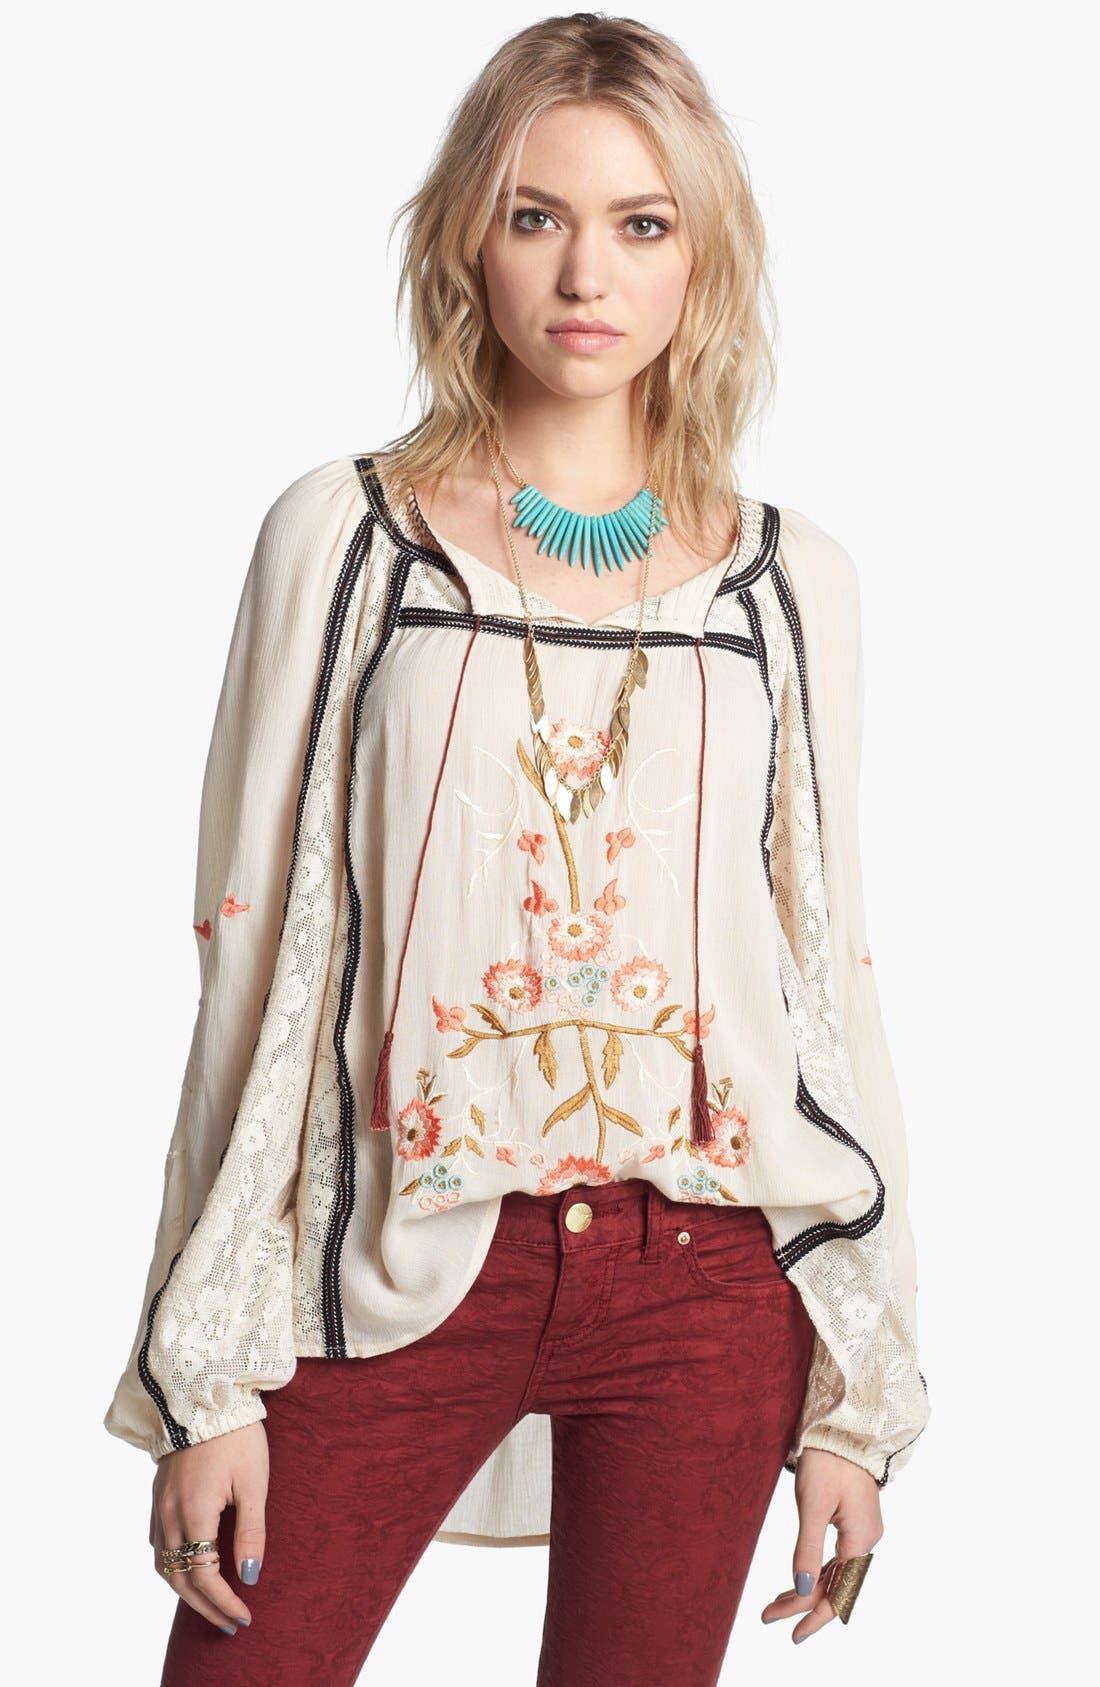 FREE PEOPLE 'Tiger Lily' Embroidered Top, Main, color, 900